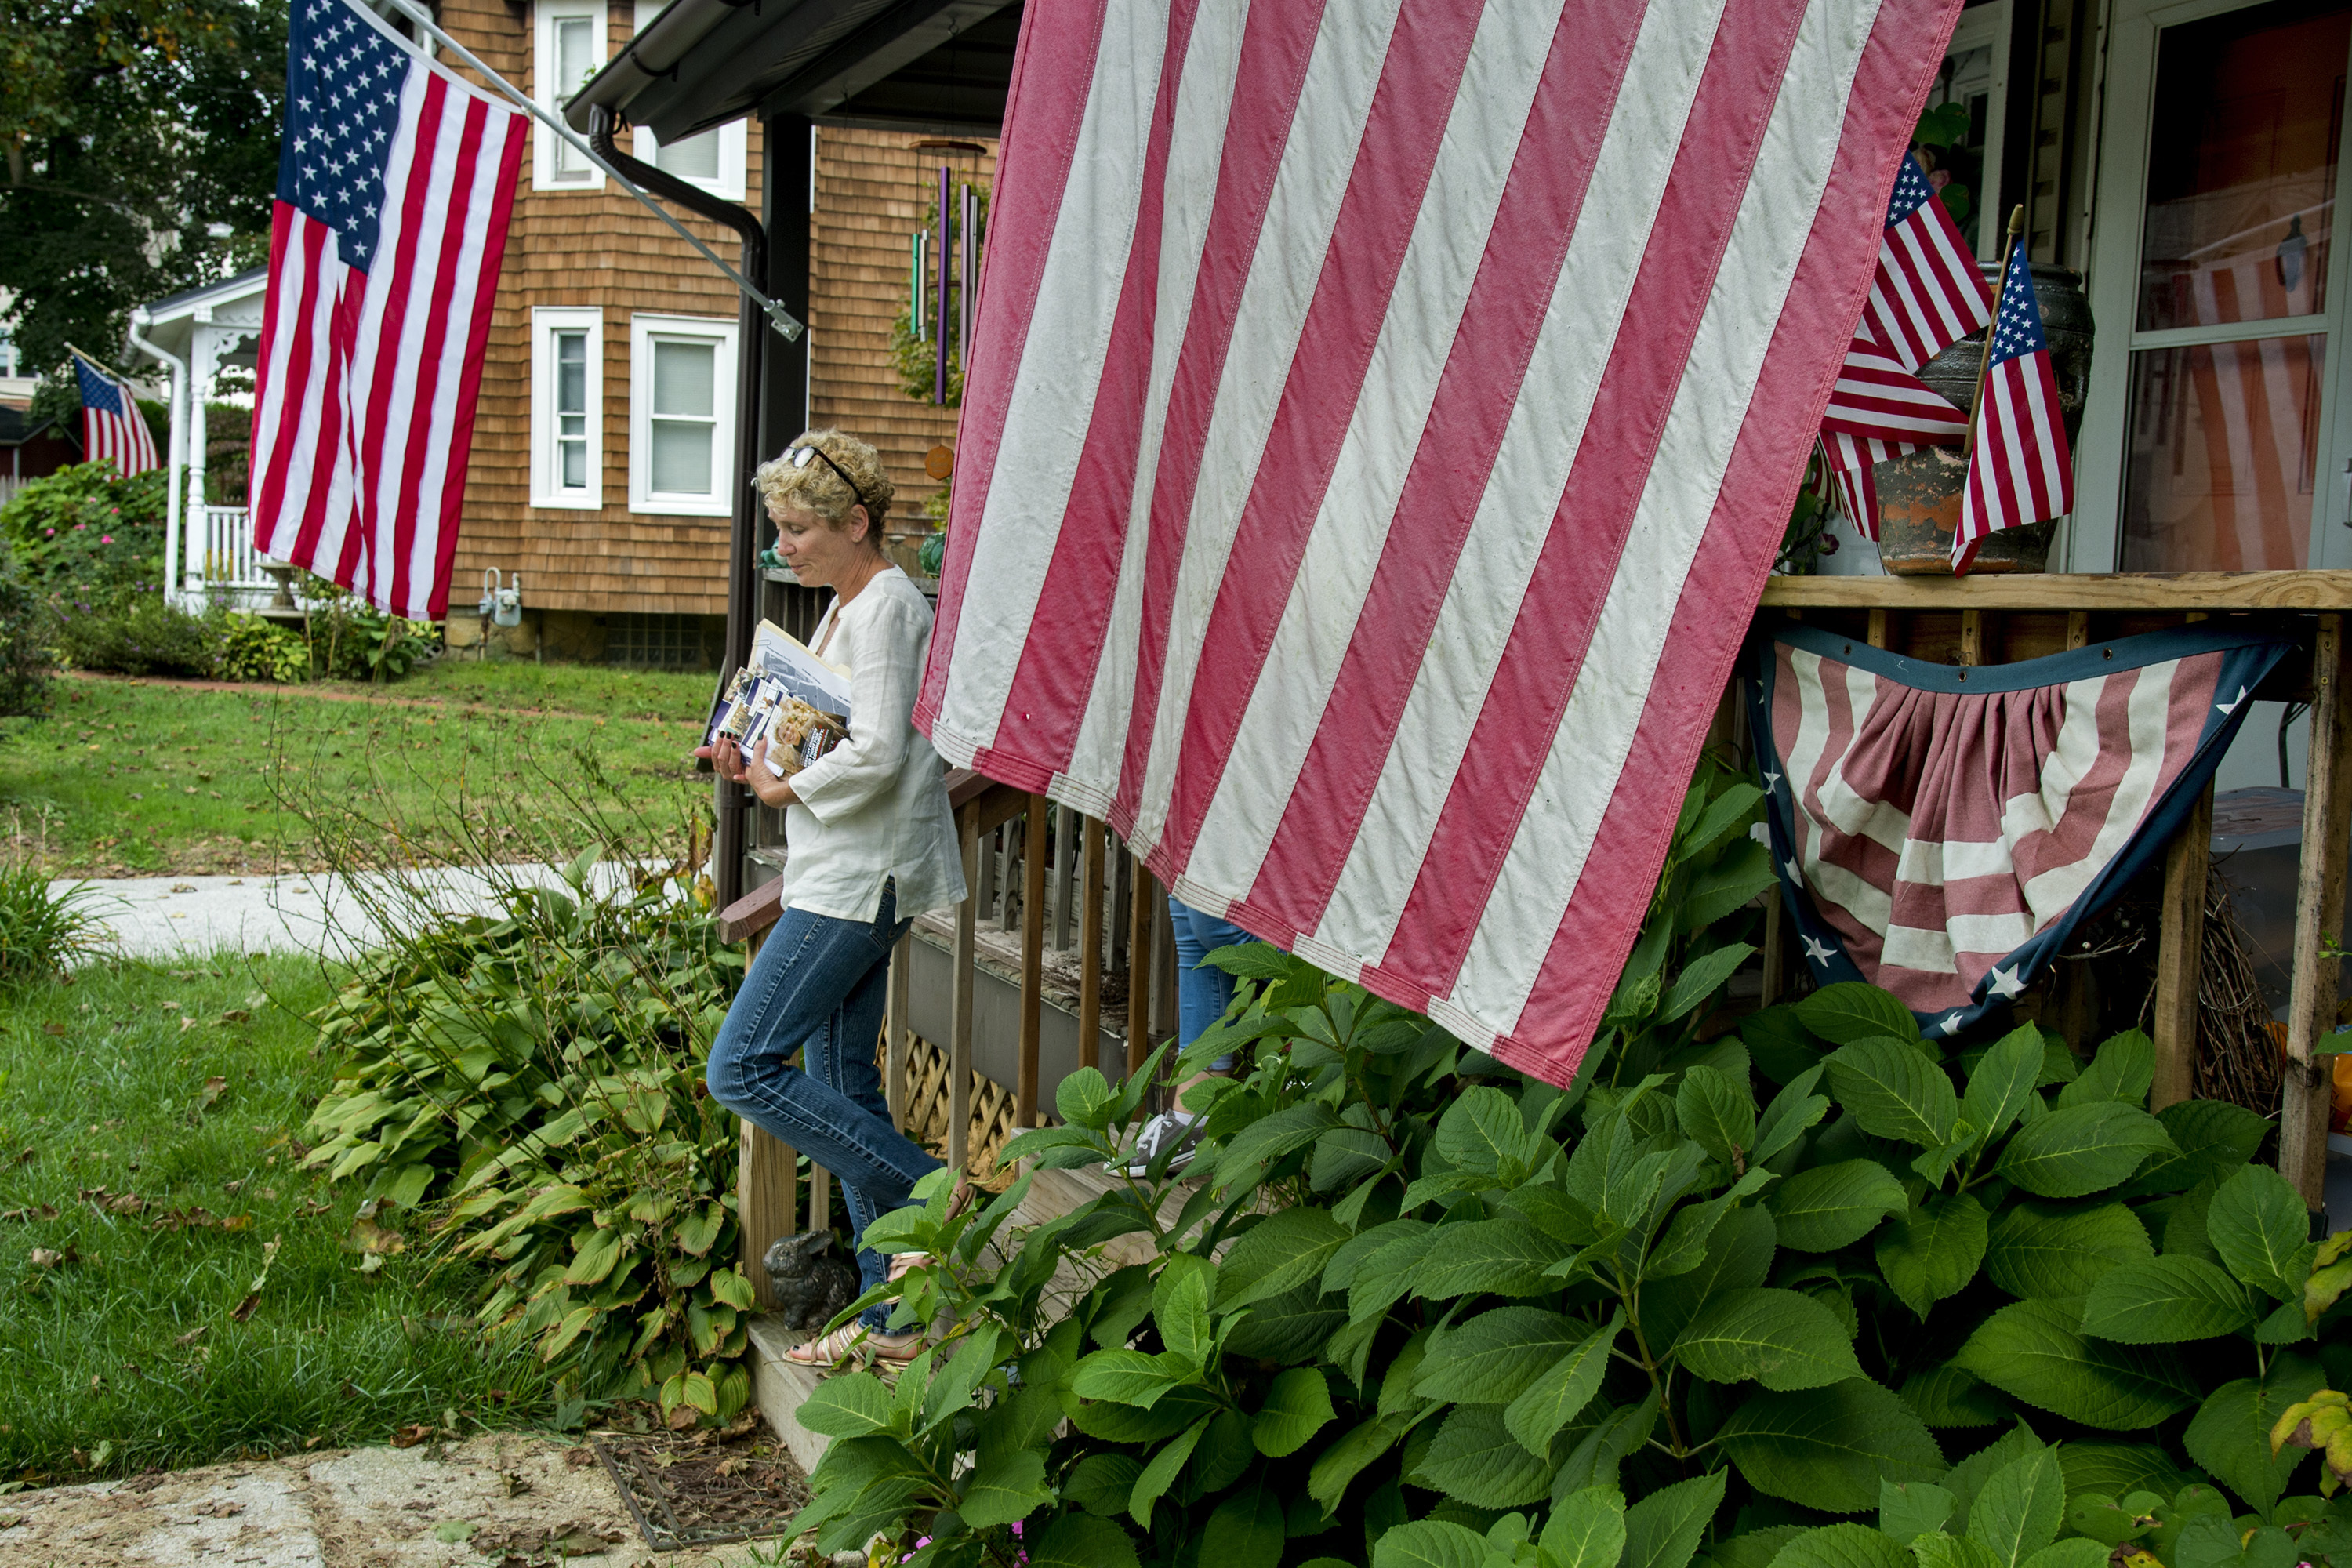 Chrissy Houlahan, Democratic candidate for Pennsylvania´s 6th congressional district, canvasses in Malvern October 7, 2018.